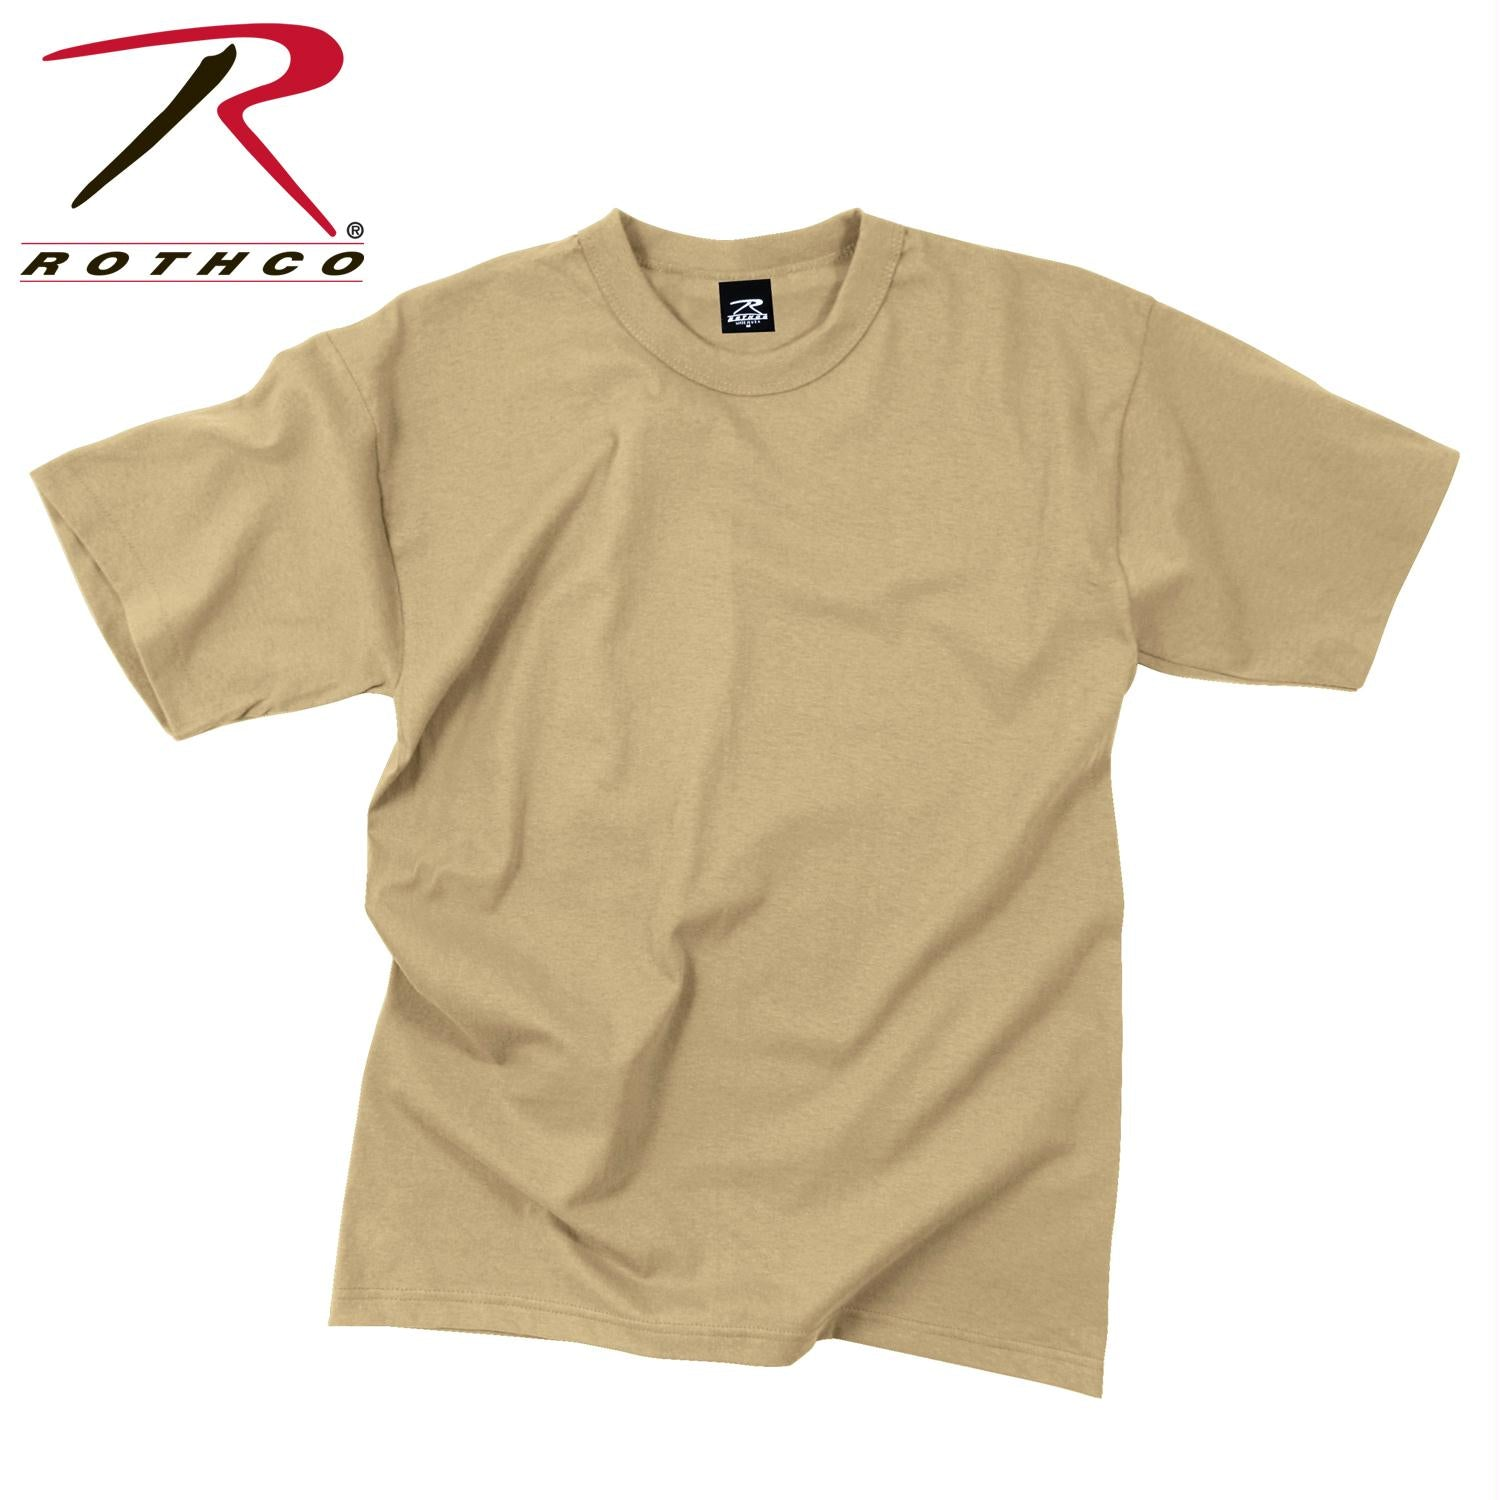 Rothco Solid Color Poly/Cotton Military T-Shirt - Khaki / L